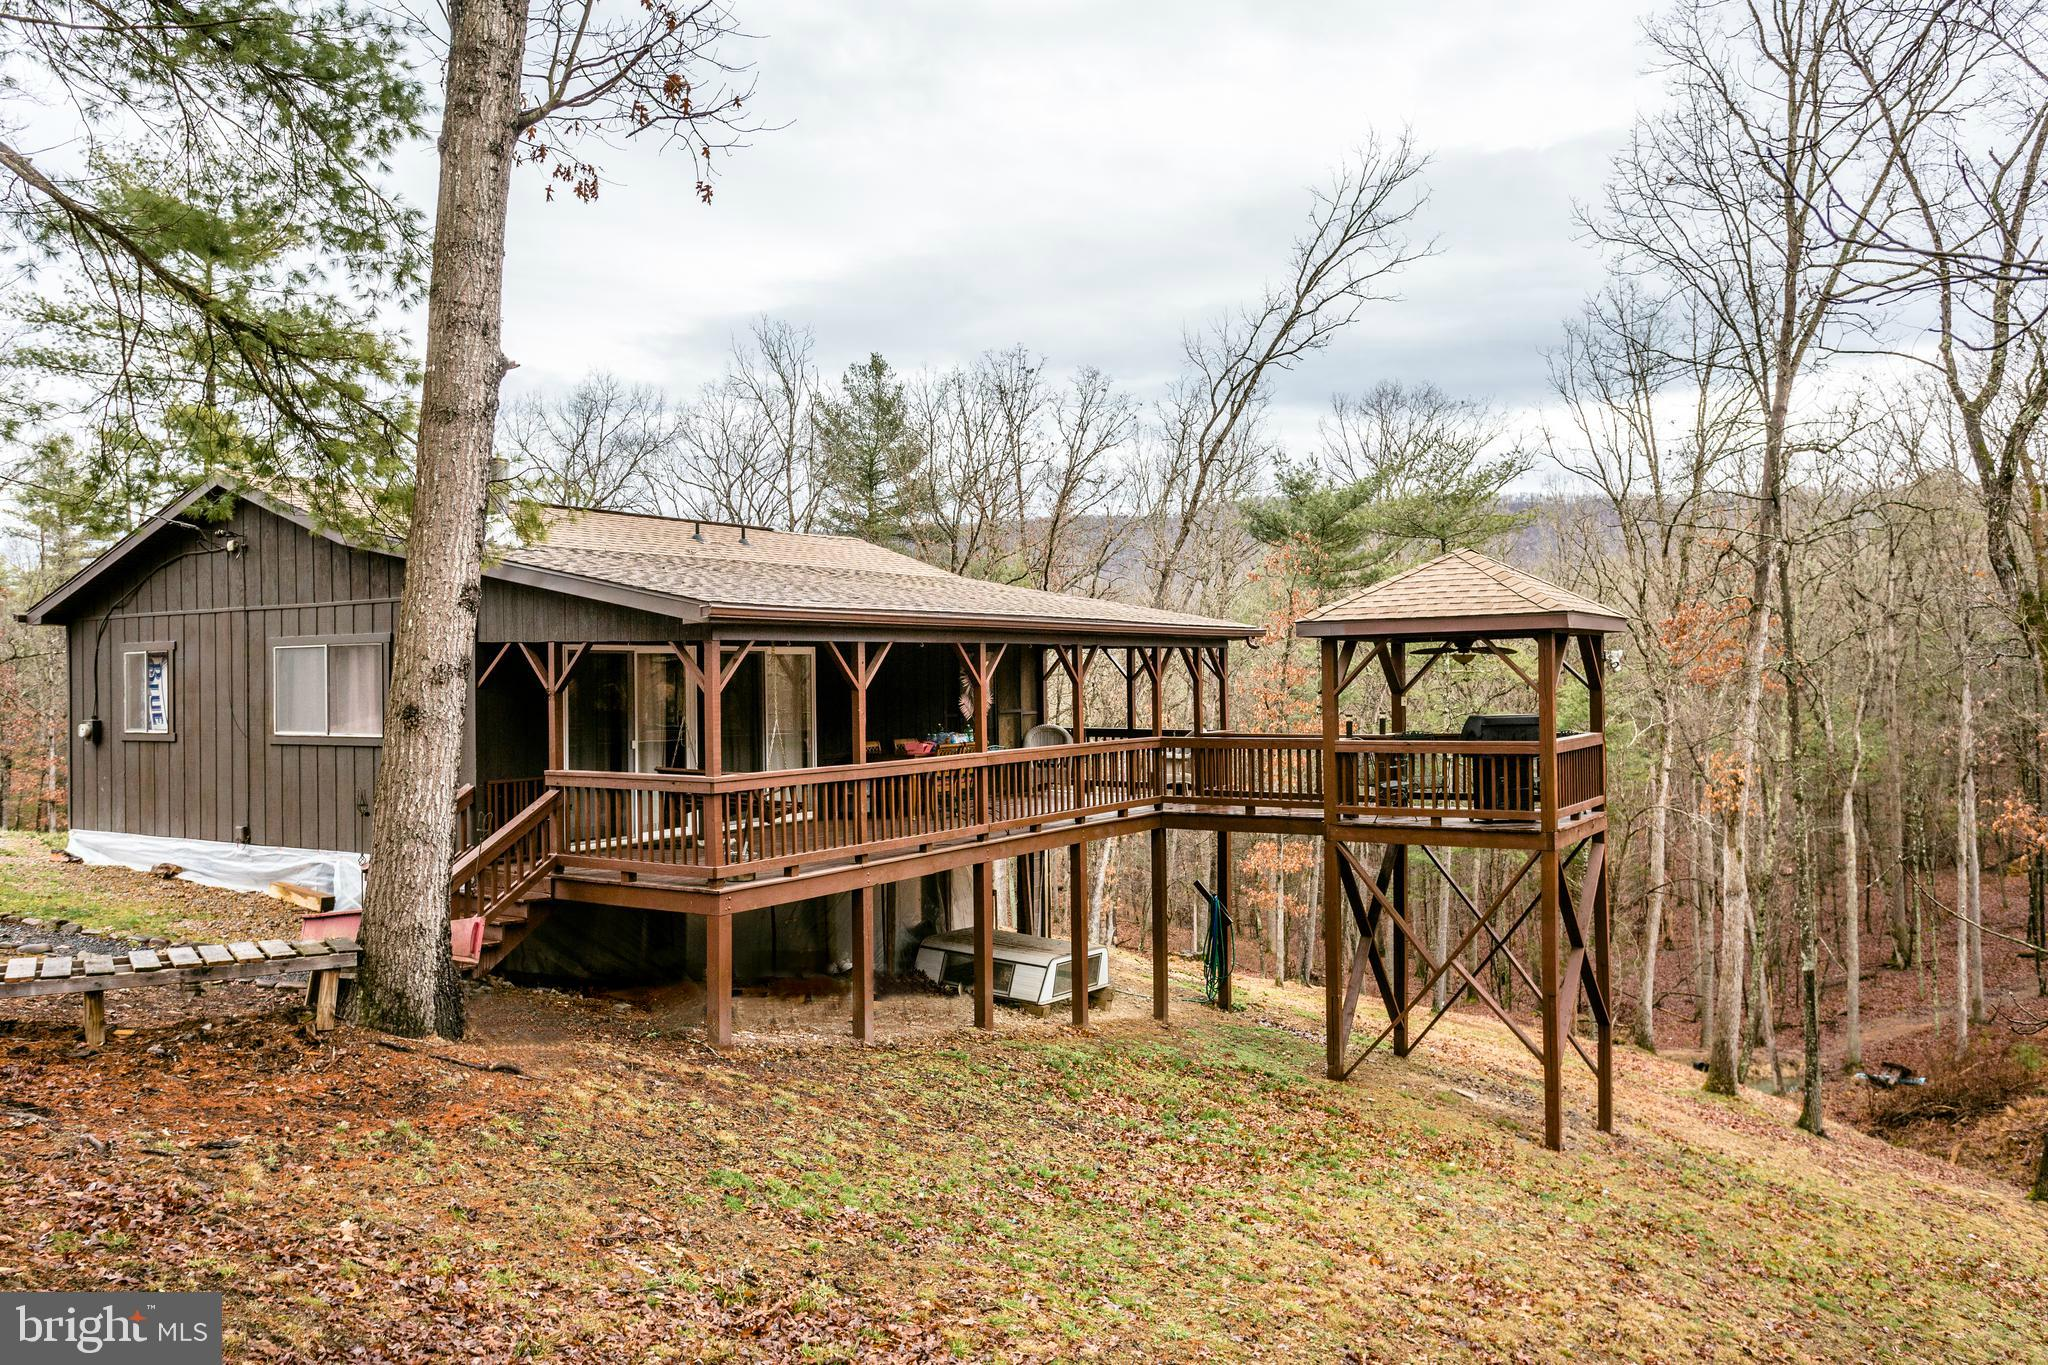 16658 DEER RUN ROAD, BROADWAY, VA 22815